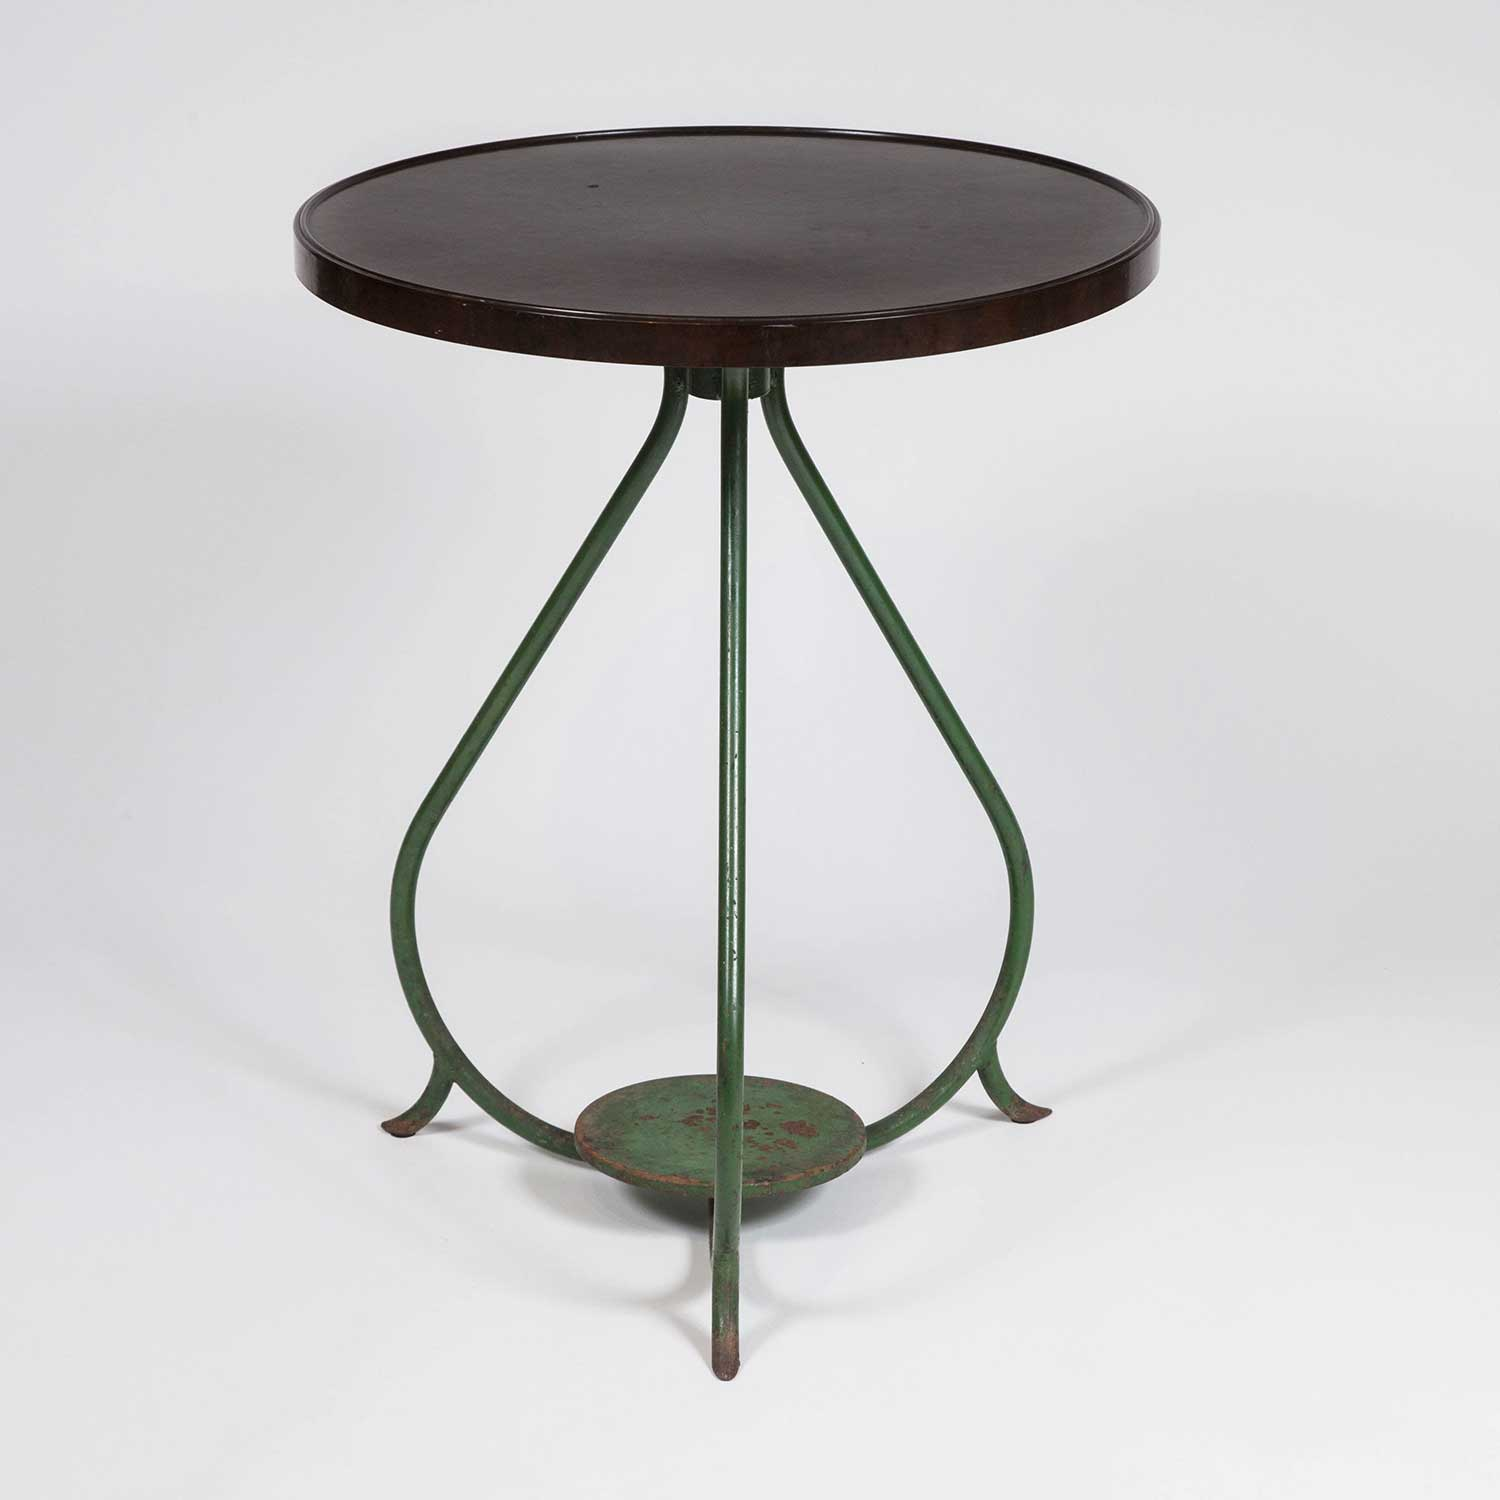 BISTRO TABLE WITH BAKELITE TOP